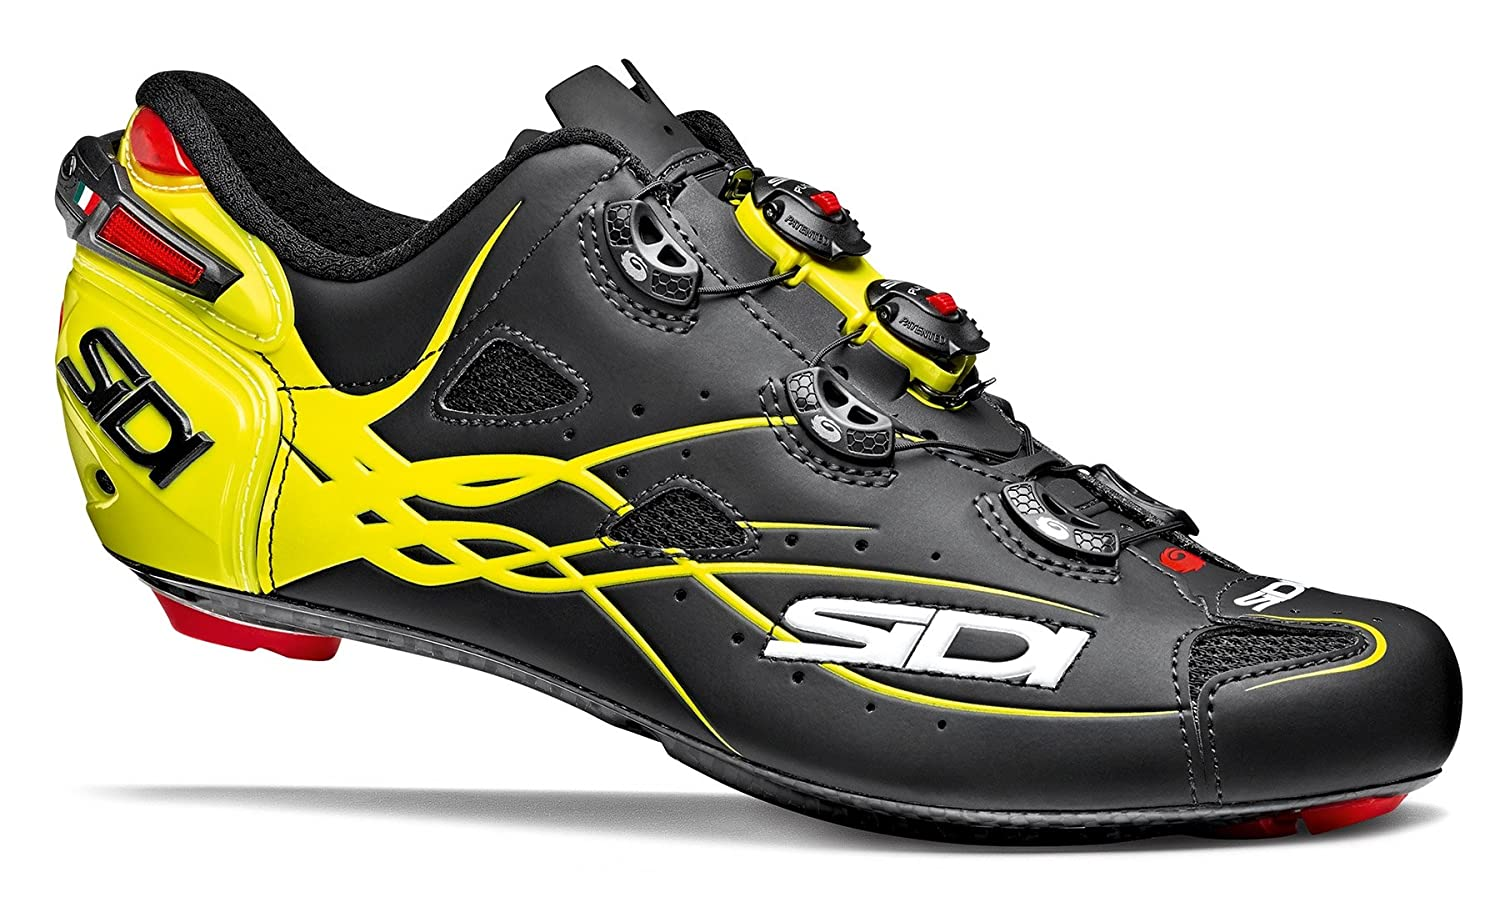 SIDI(シディ) SHOT(ショット) Road Cycling Shoes - Matt Black/Yellow Fluo [並行輸入品] 40 EUR [25.0cm]  B077HHSQ84